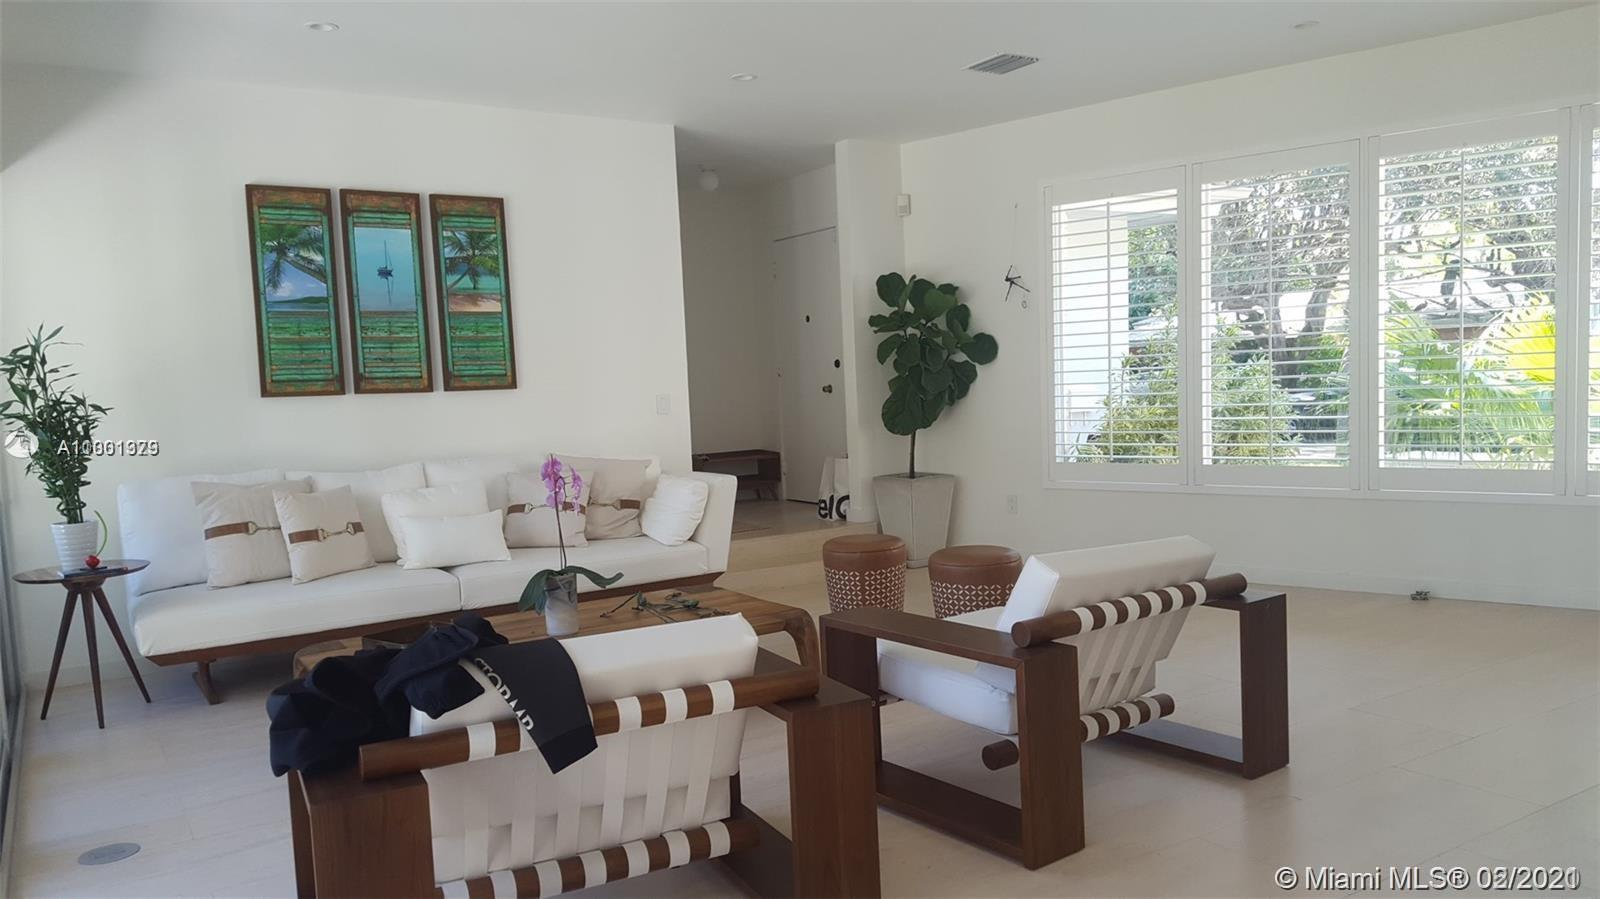 MAGAZINE-TASTEFULLY COMPLETELY REMODELED HOME IN PRESTIGIOUS BAY HEIGHTS IN COCONUT GROVE. SUPER CLOSED TO BAYFRONT PARKS & MARINAS AND CLOSE TO THE GROVE VILLAGE CENTER'S GALLERIES, BOUTIQUES & RESTAURANTS. 3 BR/3BA + POWDER ROOM. HUGE FAMILY ROOM PRIVATE AREA WHICH CAN BE USED AS A FOURTH BEDROOM, HOME OFFICE, STUDIO-GYM OR JUST AS A FAMILY SPACE. LIGHT-FILLED, OPEN LIVING SPACES WITH A WHITE COLOR PALETTE, BEAUTIFUL MODERN OPEN KITCHEN. LARGE LIVING ROOM AND DINING ROOM OVERLOOKING BACKYARD. SPECTACULAR KID FRIENDLY SPACIOUS BACKYARD. MARBLE FLOORS. IMPACT WINDOW/DOORS. LAUNDRY ROOM. ROOF DONE RECENTLY. UNIQUE FRONT APPEAL & DRIVEWAY. MINUTES TO DOWNTOWN, MIA & THE BEACHES. AND THIS IS THE BEST AREA OF COCONUT GROVE (NORTH COCONUT GROVE) WITH PRIVATE 24 HOURS SECURITY.